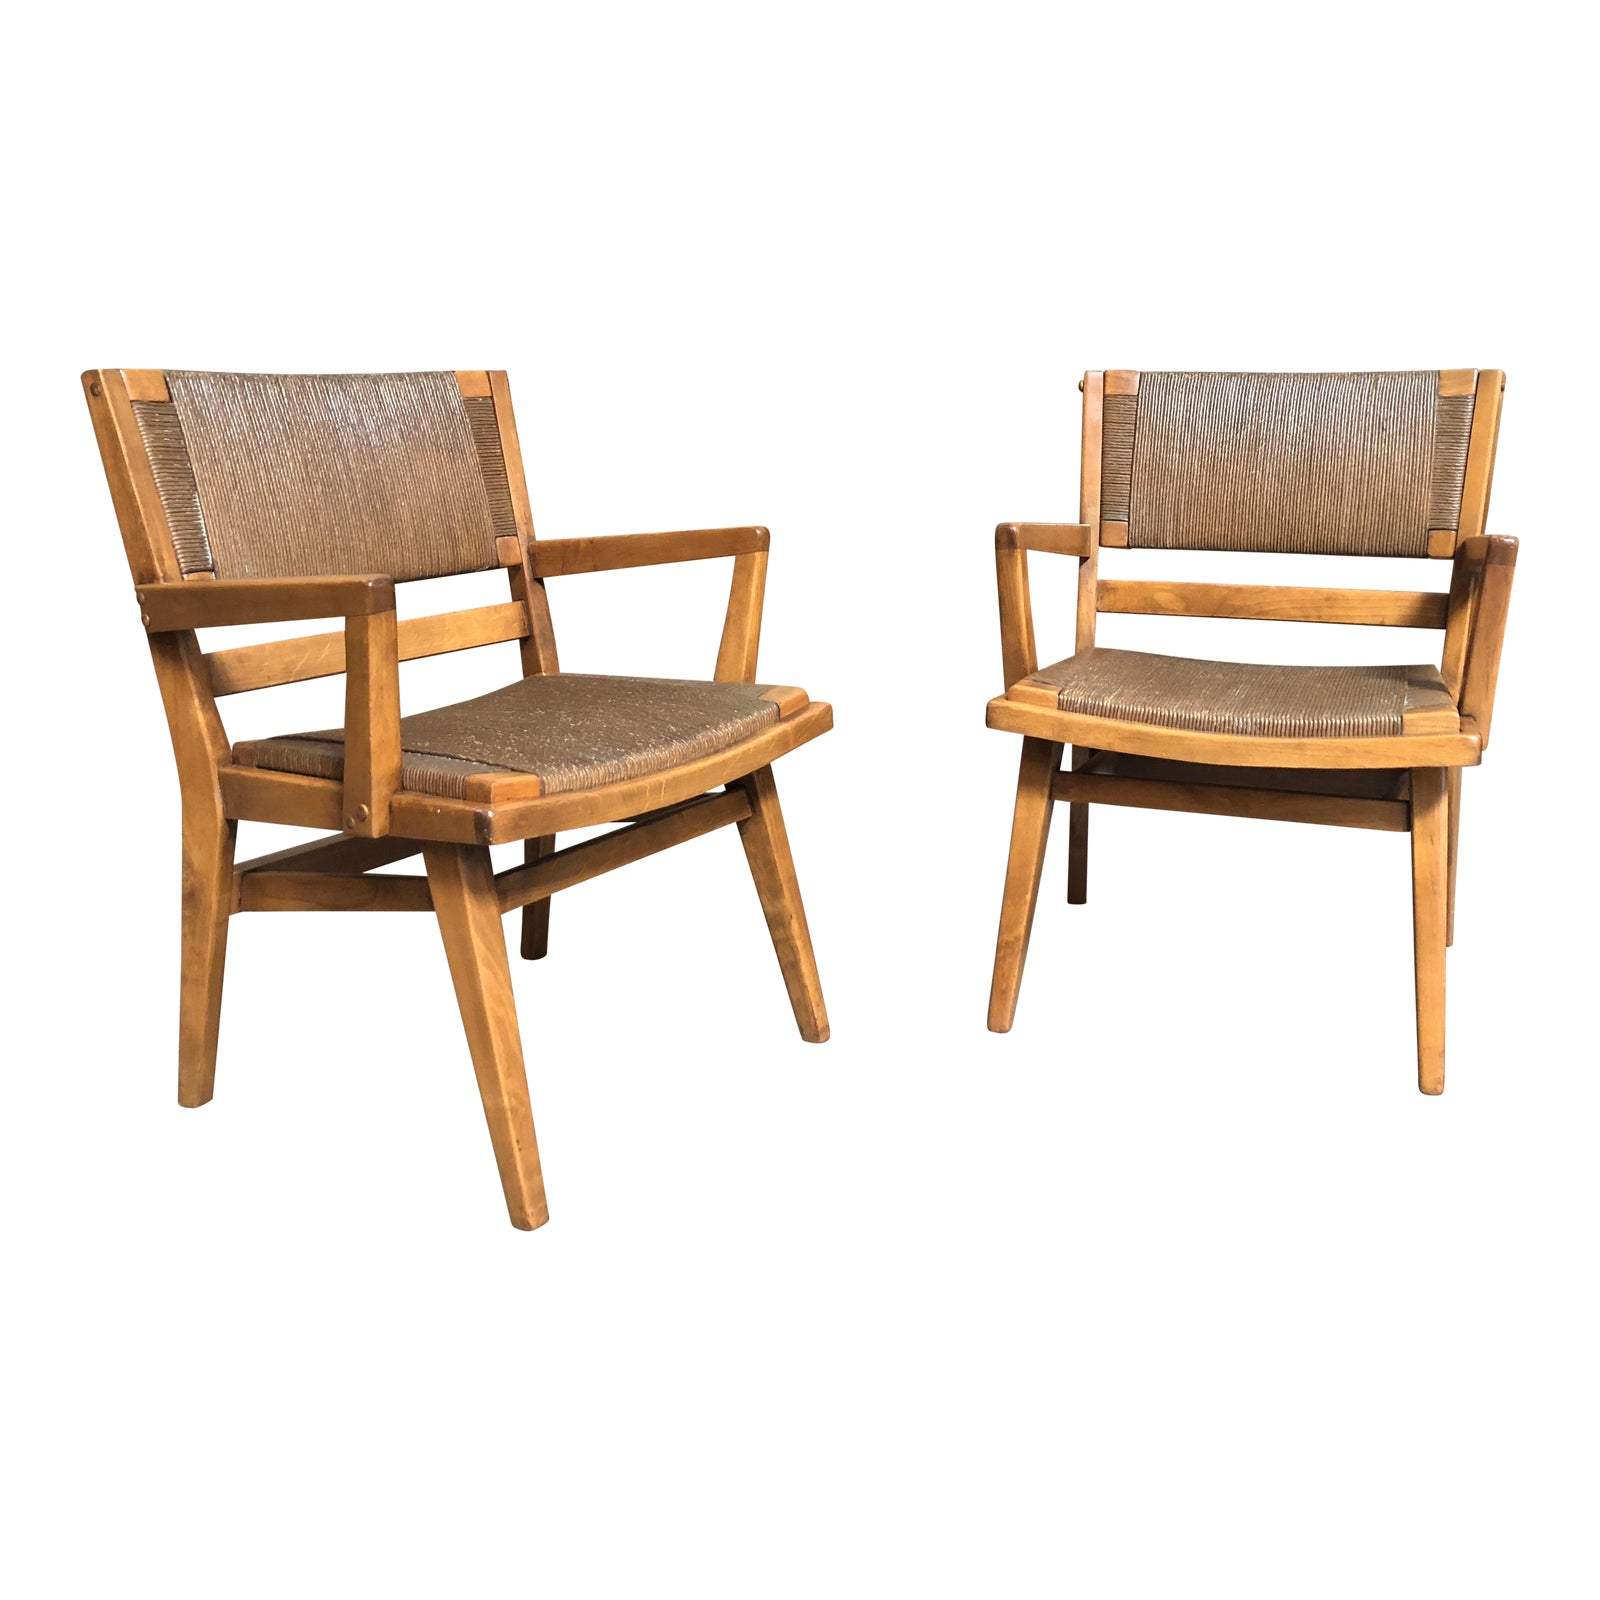 Mid century modern woven rush seat wooden arm chairs chairish